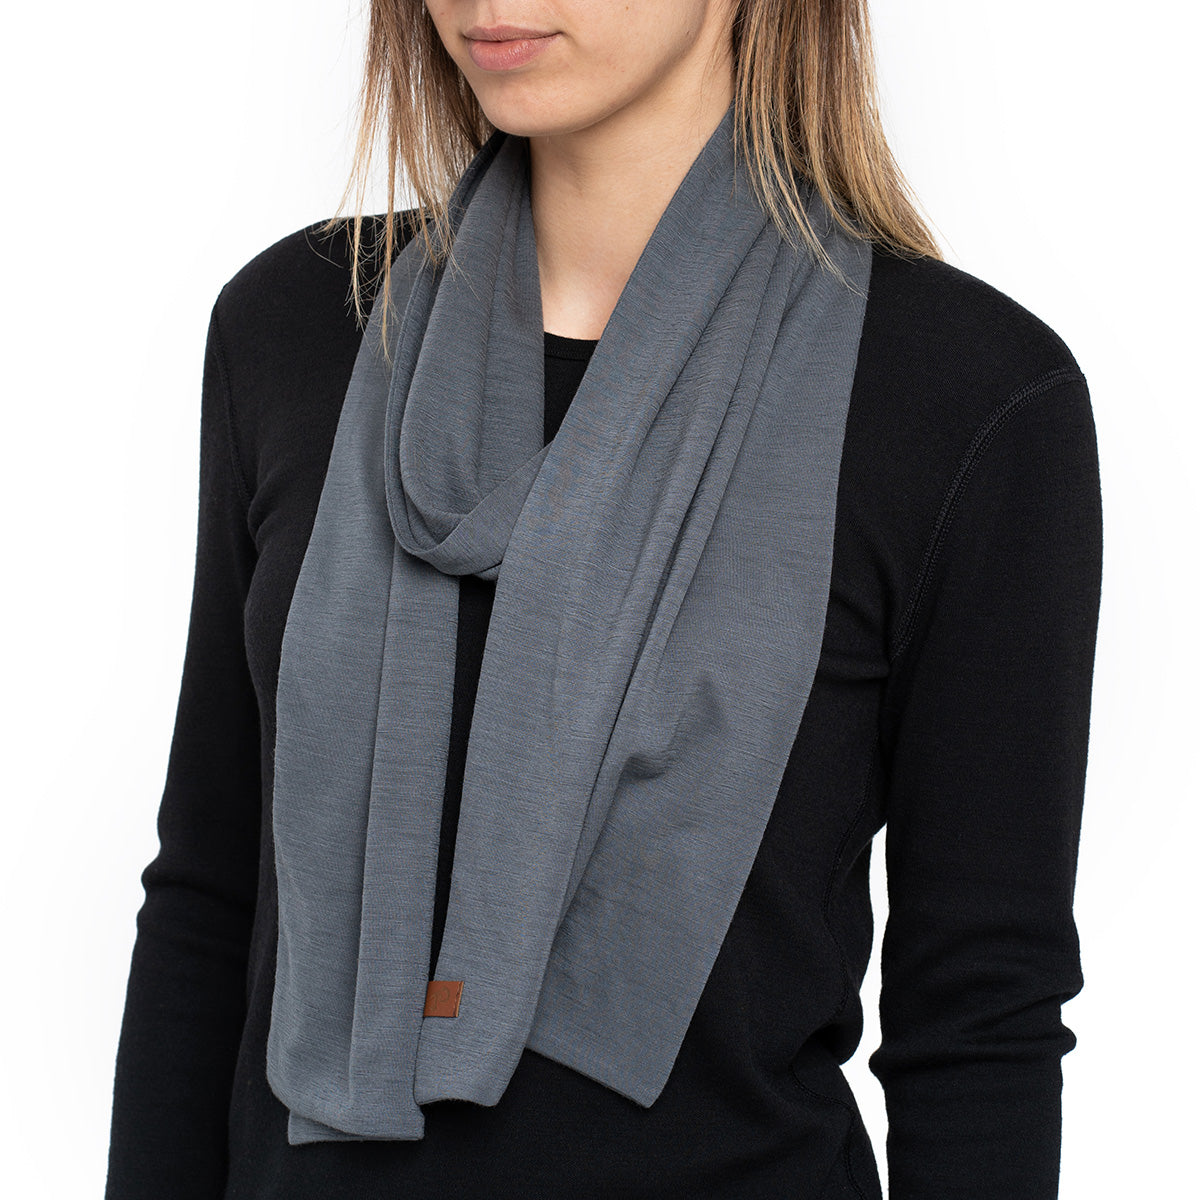 menique Women's Merino Scarf Perfect Grey Color